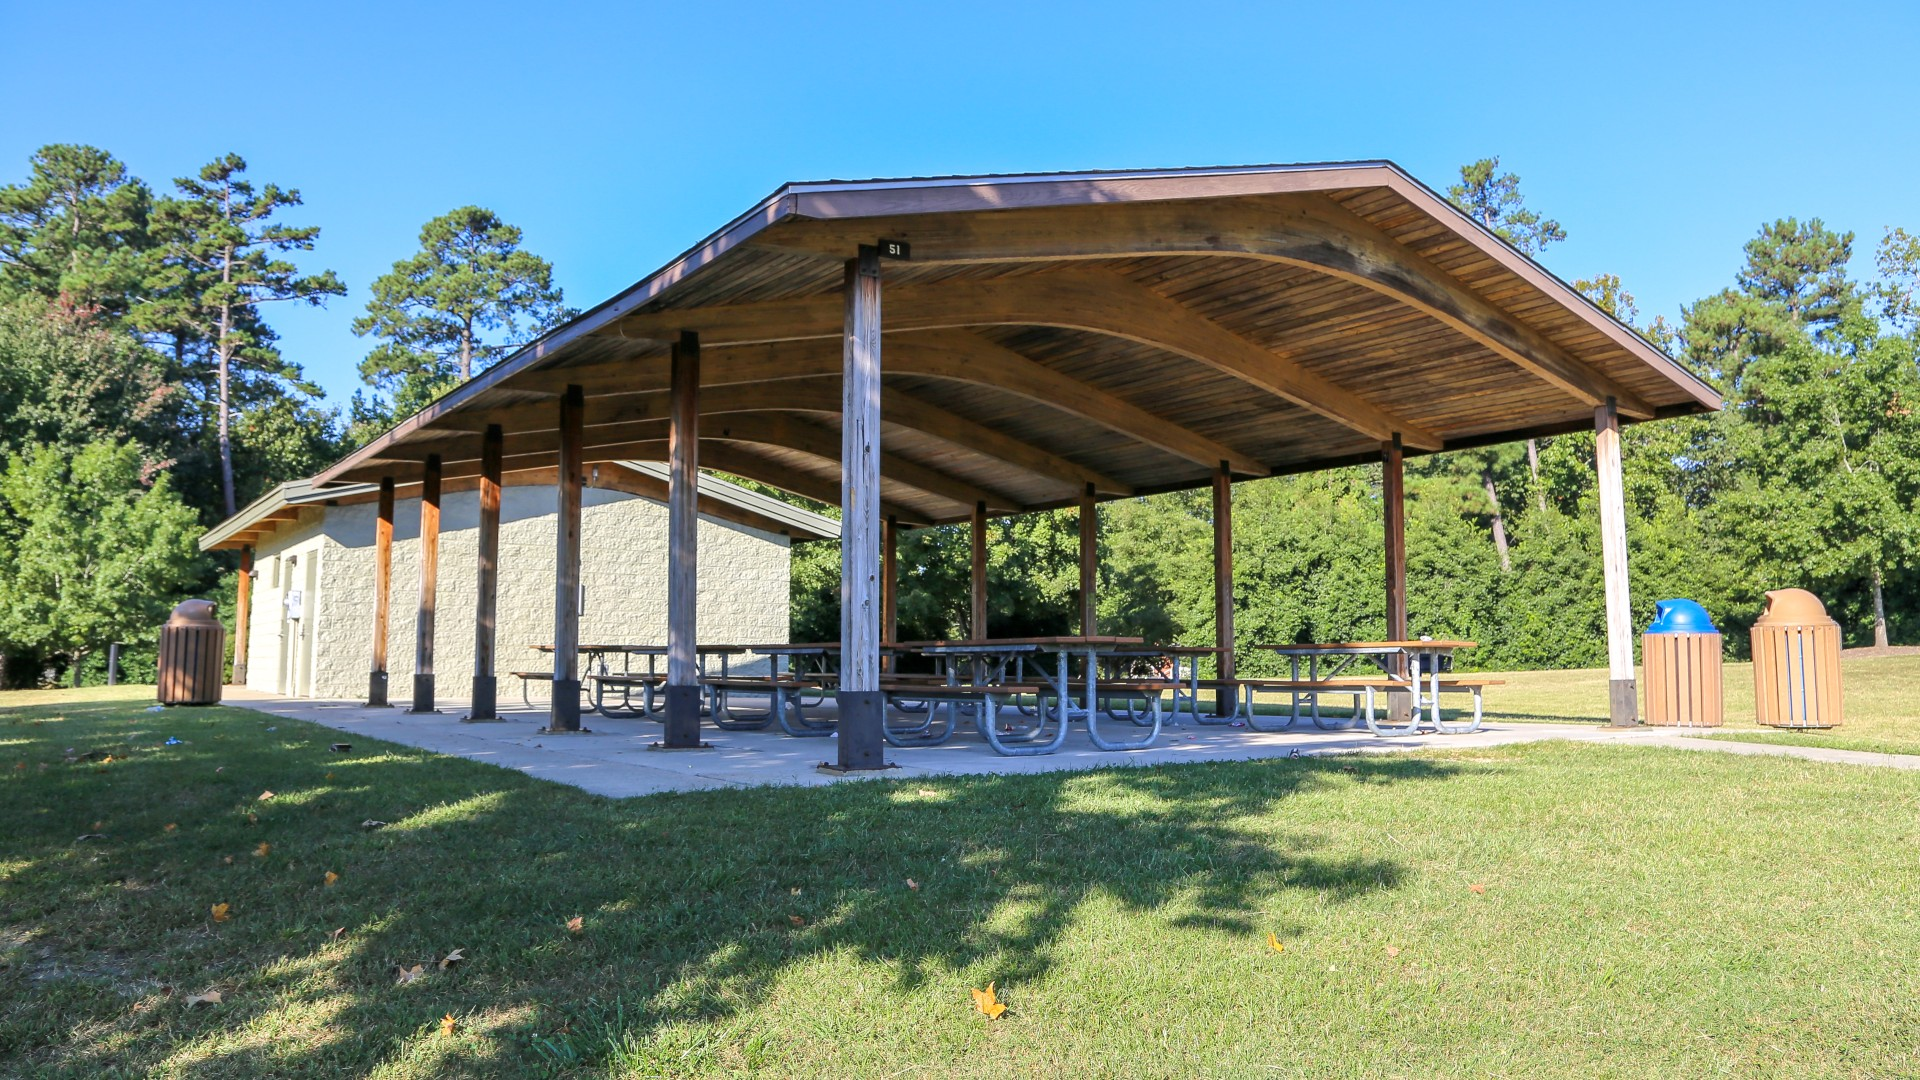 A large outdoor picnic shelter with several tables at Marsh Creek